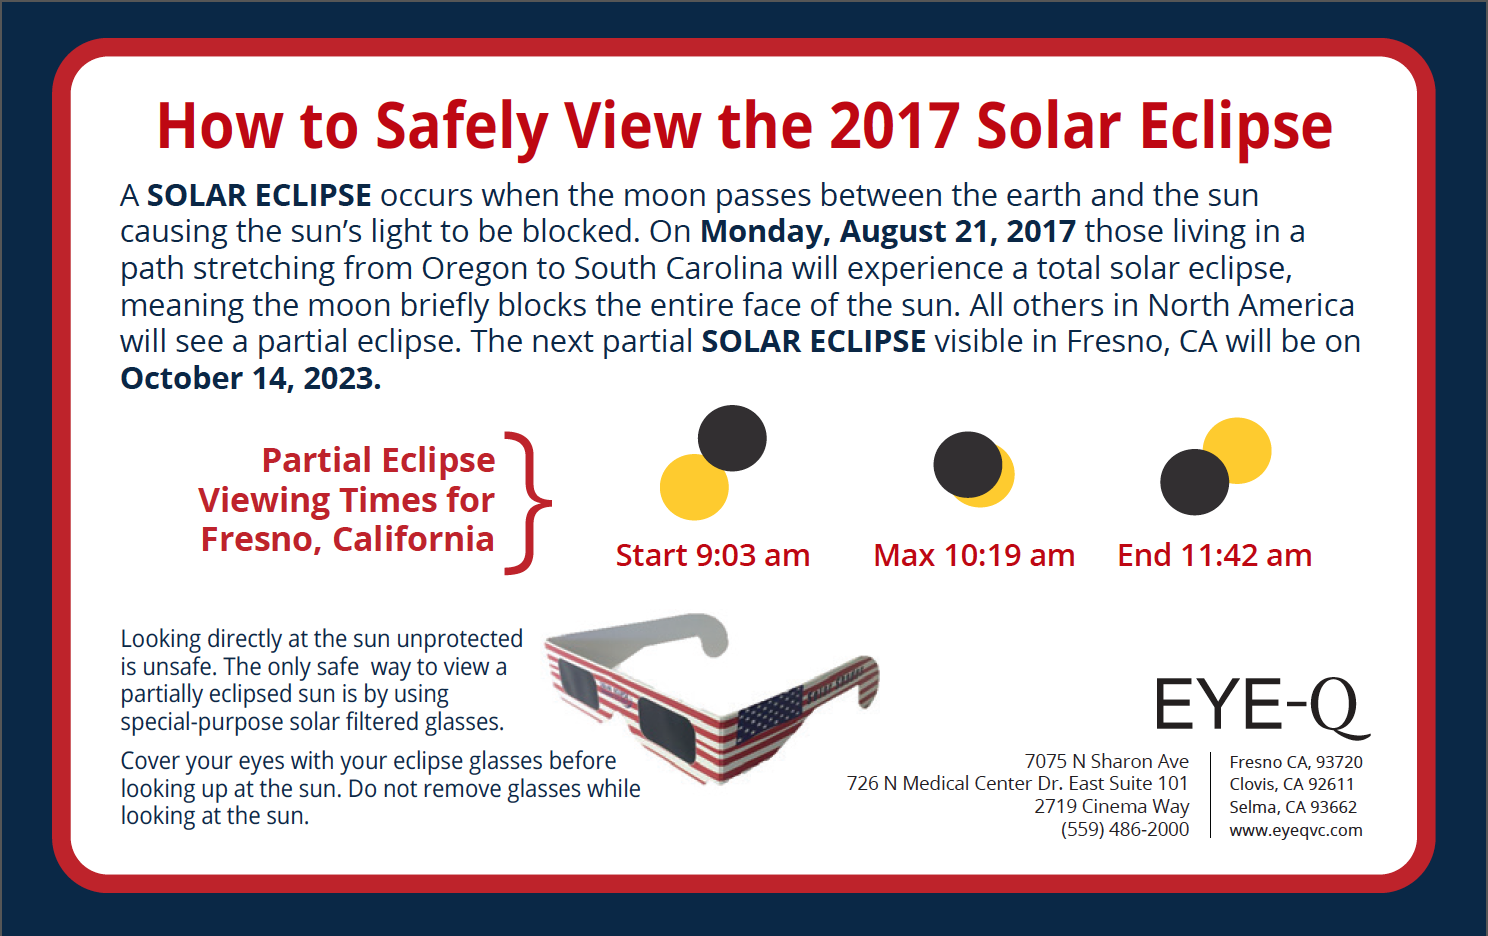 Preparing for the Upcoming Solar Eclipse